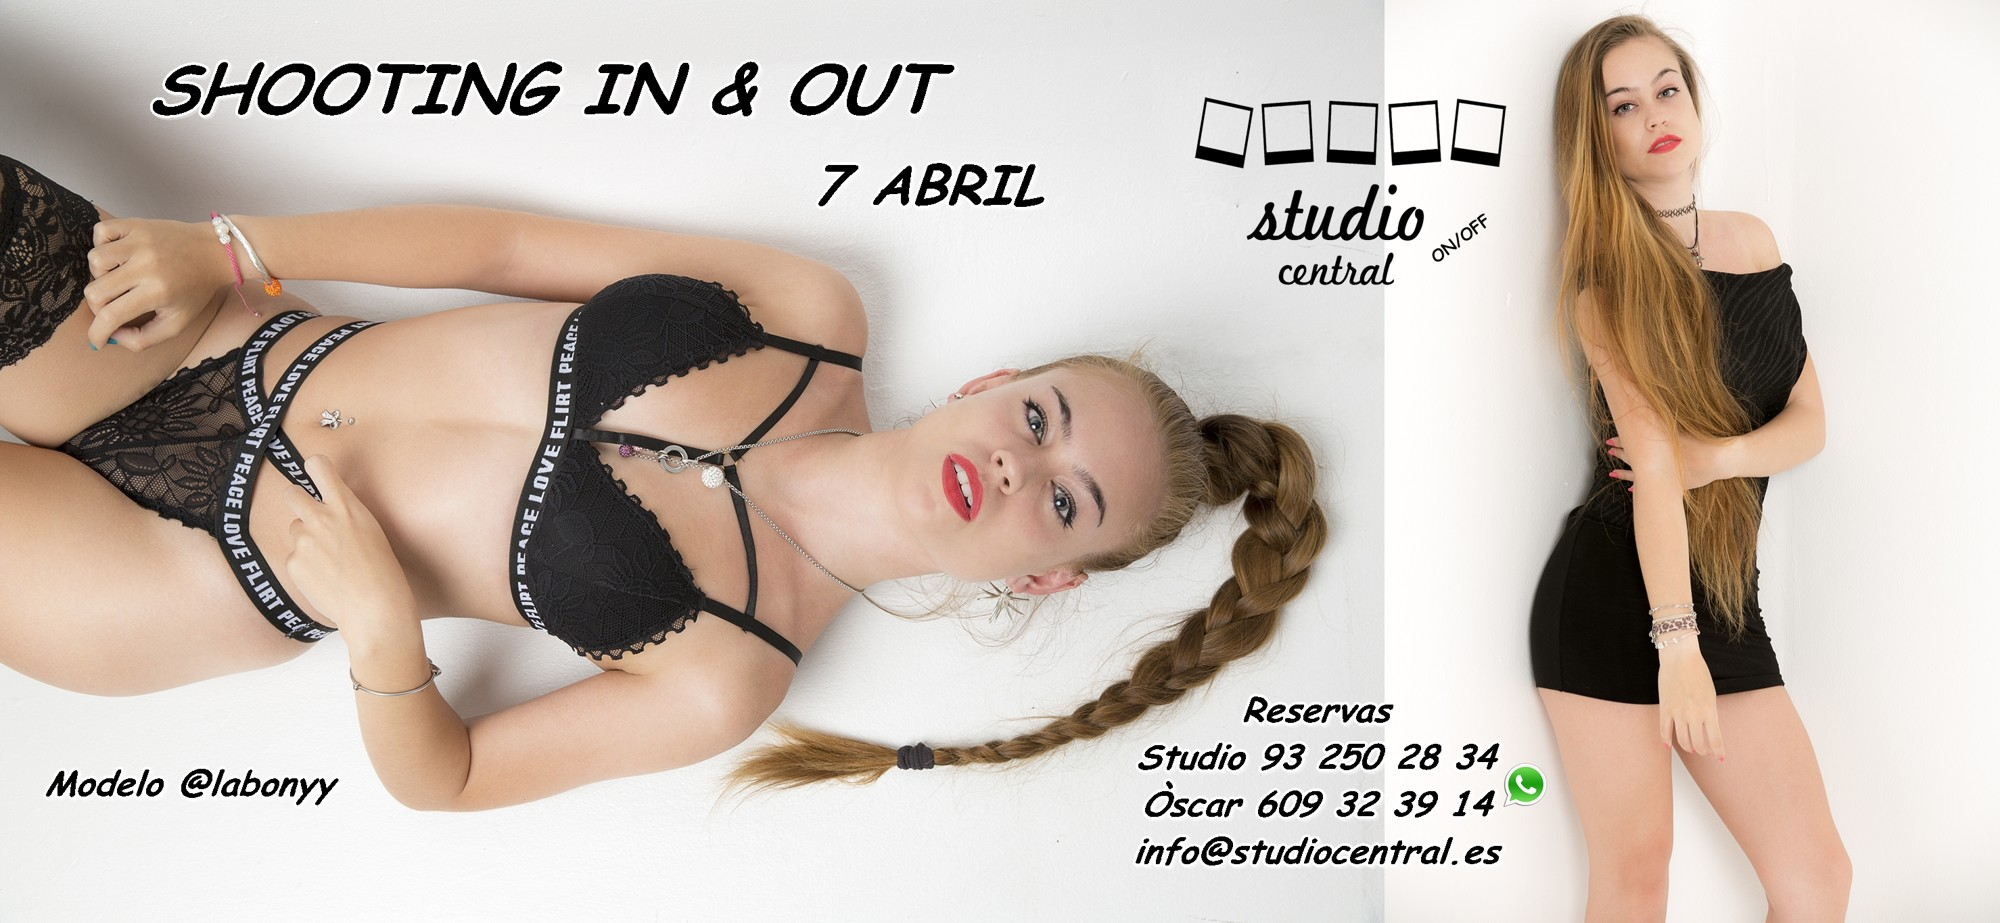 Shooting 07 Abril 2019